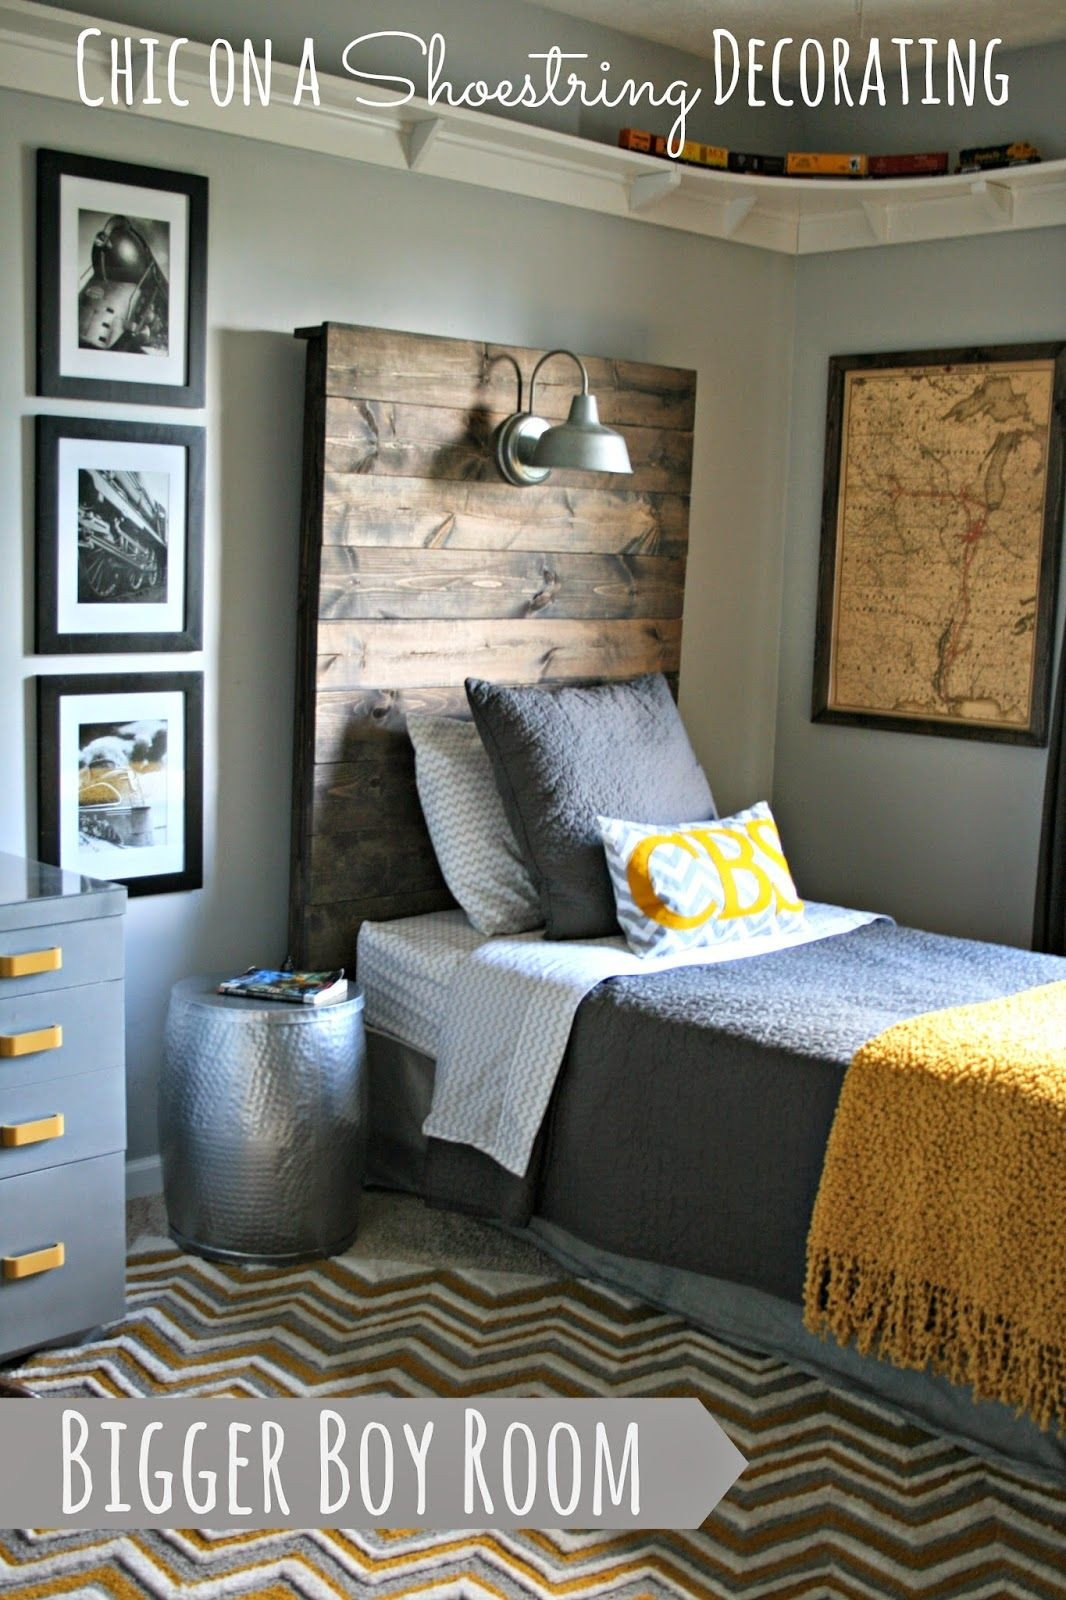 Light Fixtures for Girl Bedroom Awesome How to Make A Rustic Headboard with A Light Fixture by Chic